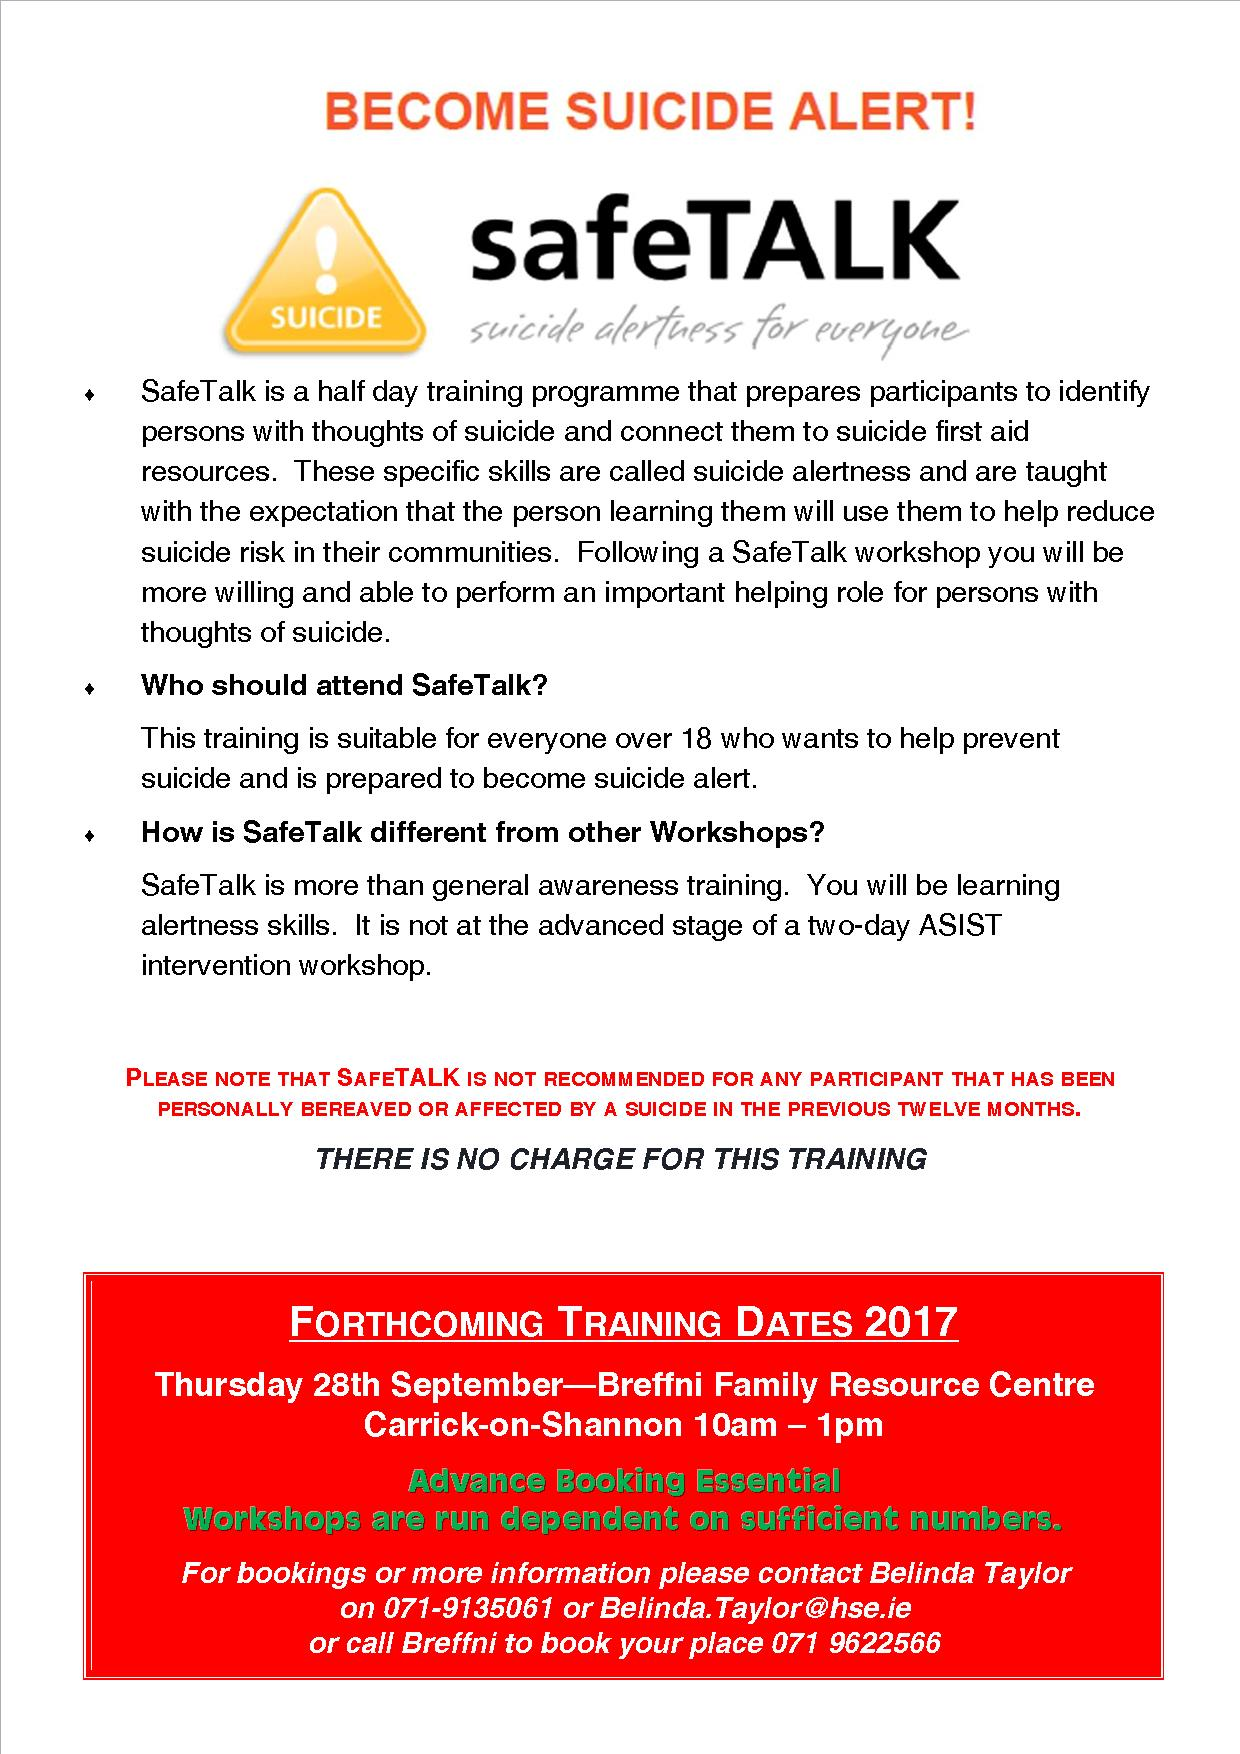 MyCarrick Event - Breffni Family Resource Centre - SafeTALK Training